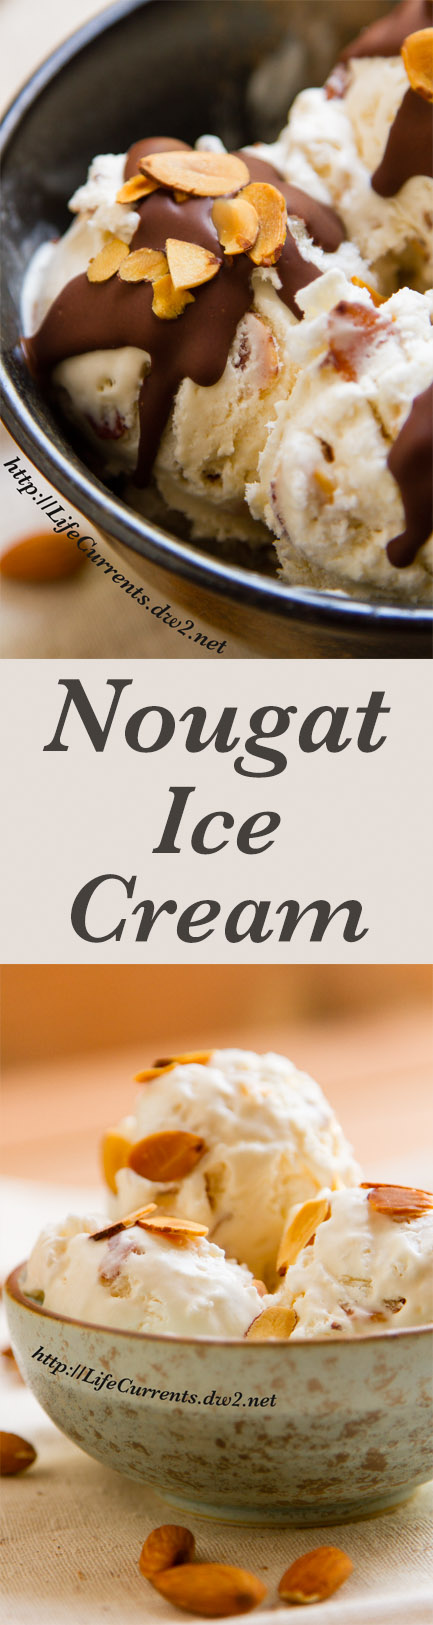 Almond Nougat Ice Cream Recipe Long pin with two images, top: with magic shell chocolate drizzle and bottom: in a blue bowl